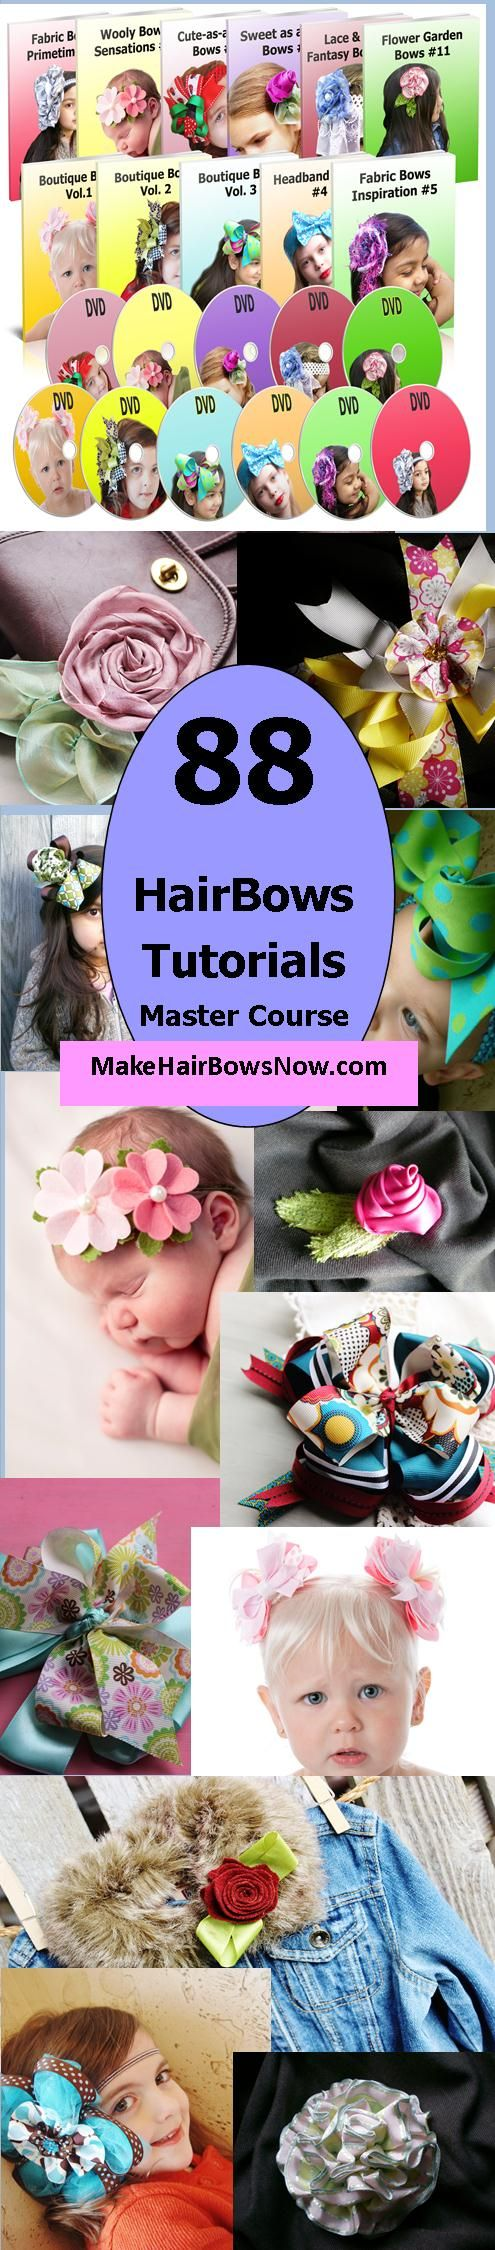 Learn How to Make HairBows & Accessories / 88 Designs / Premier Master Course